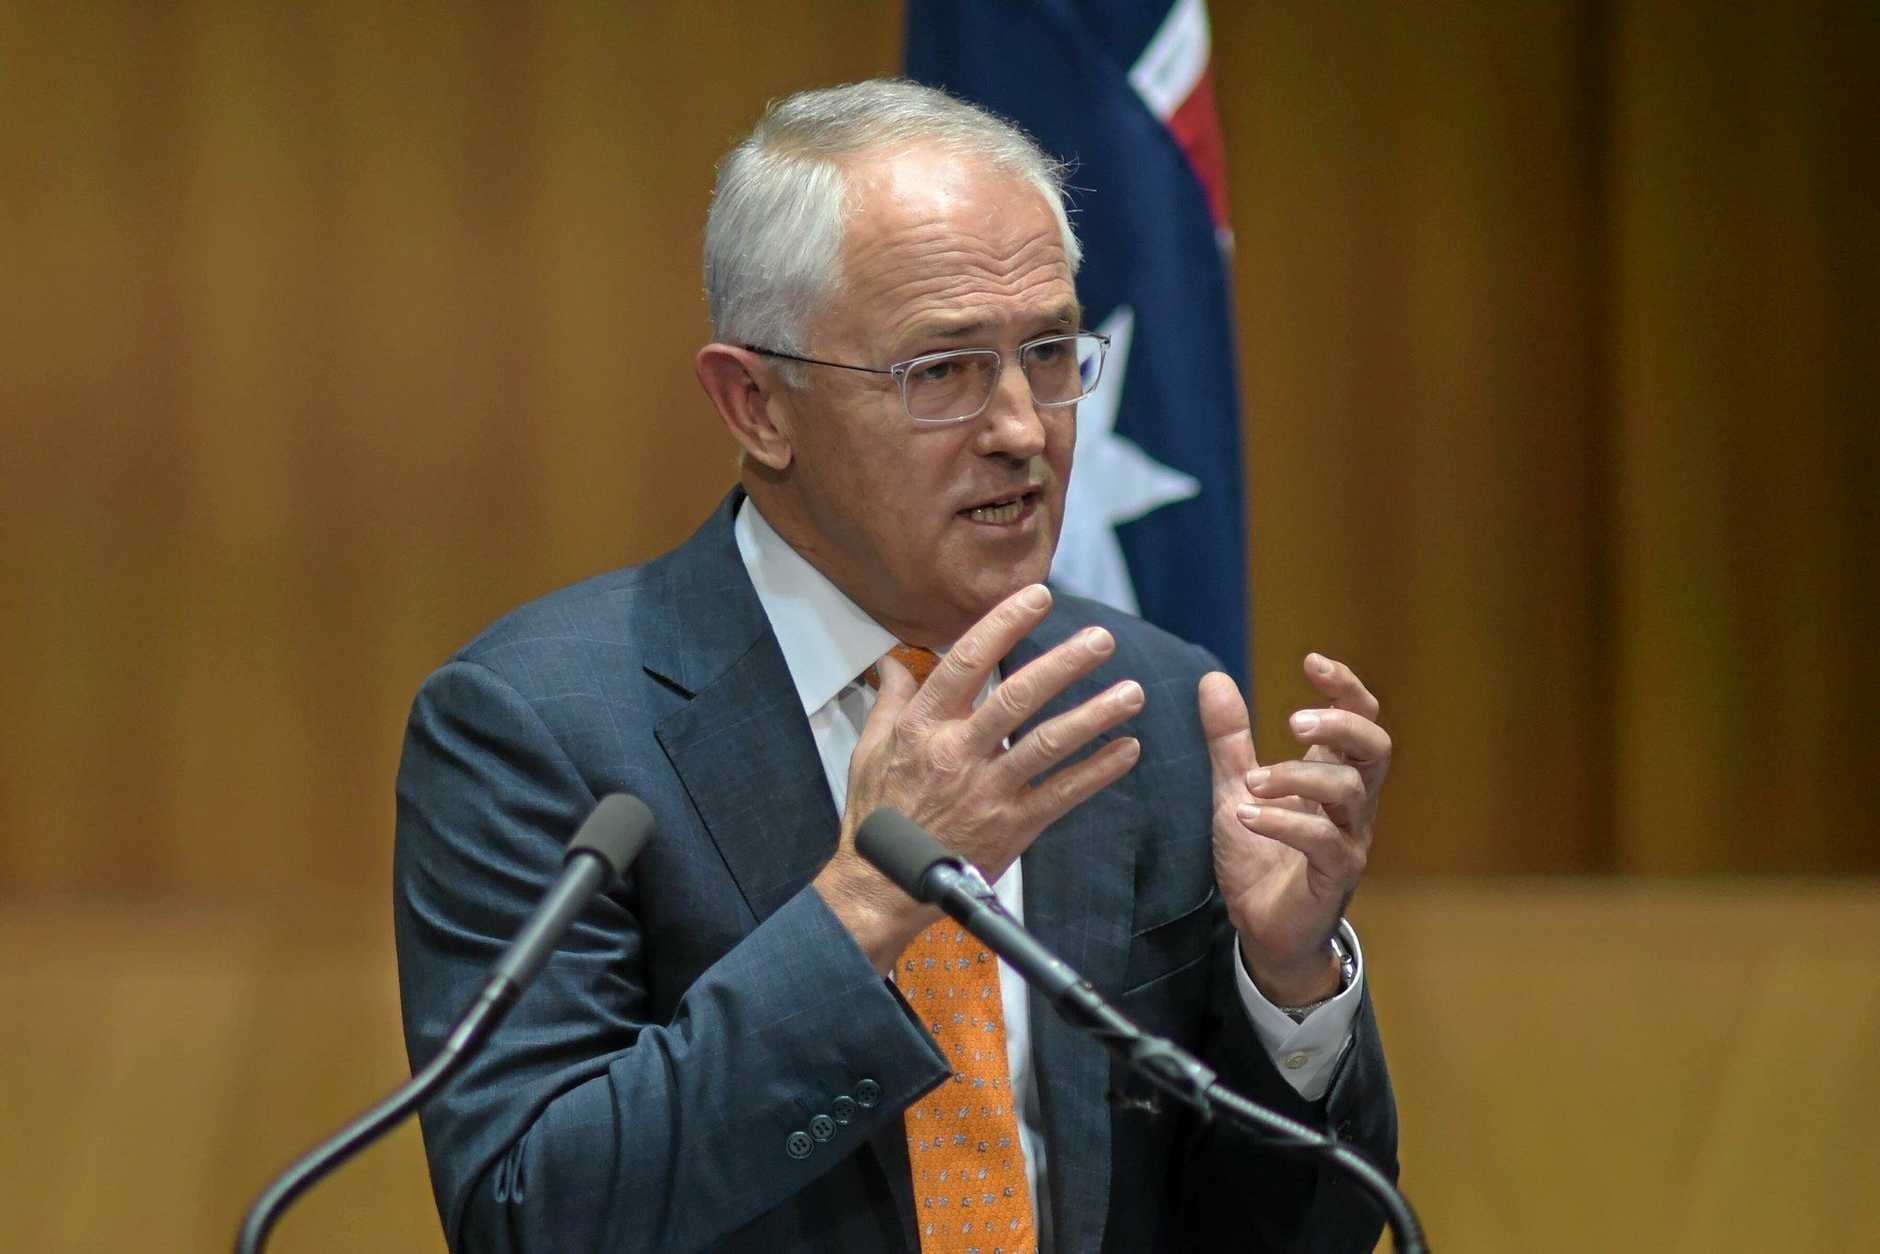 Australian Prime Minister Malcolm Turnbull speaks to the media during a press conference at Parliament House in Canberra, Sunday, May 8, 2016. Mr Turnbull today asked the Governor-General to dissolve both Houses of Parliament to call a double dissolution election for July 2, 2016.  (AAP Image/Lukas Coch) NO ARCHIVING